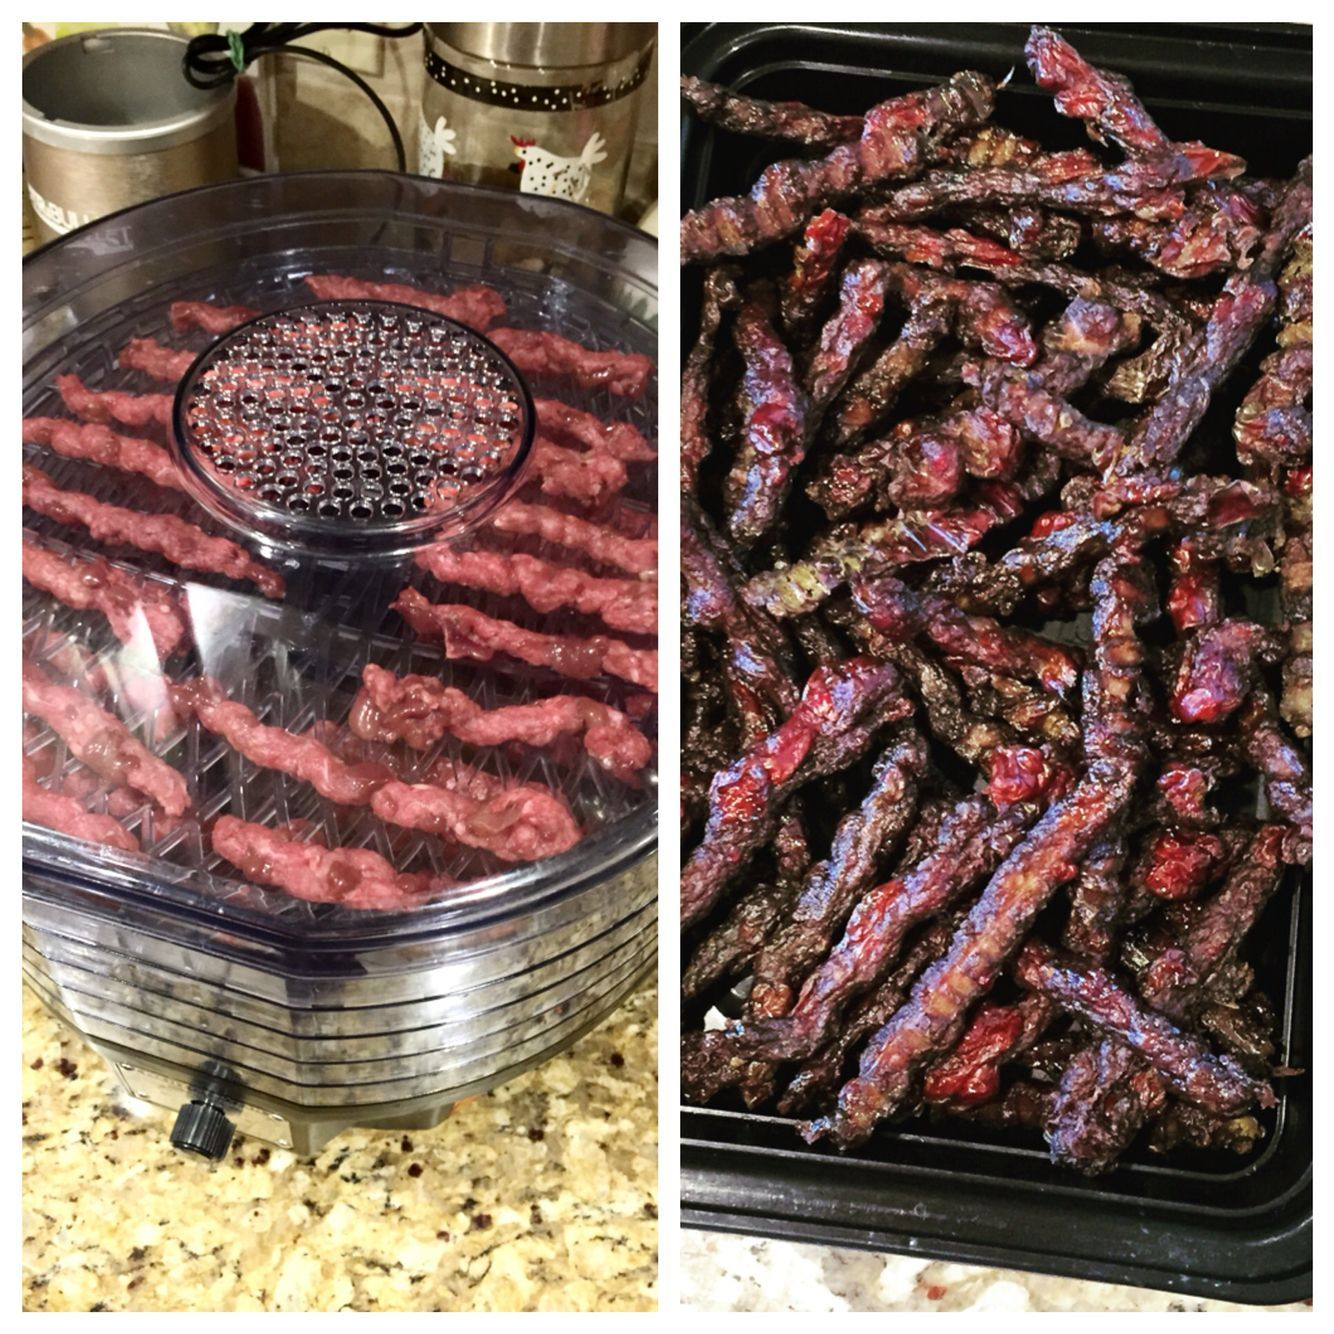 Top 10 homemade dog treat recipes dog dog food and doggies homemade chicken liver and ground beef jerky treats for my dogs recipe taken forumfinder Image collections